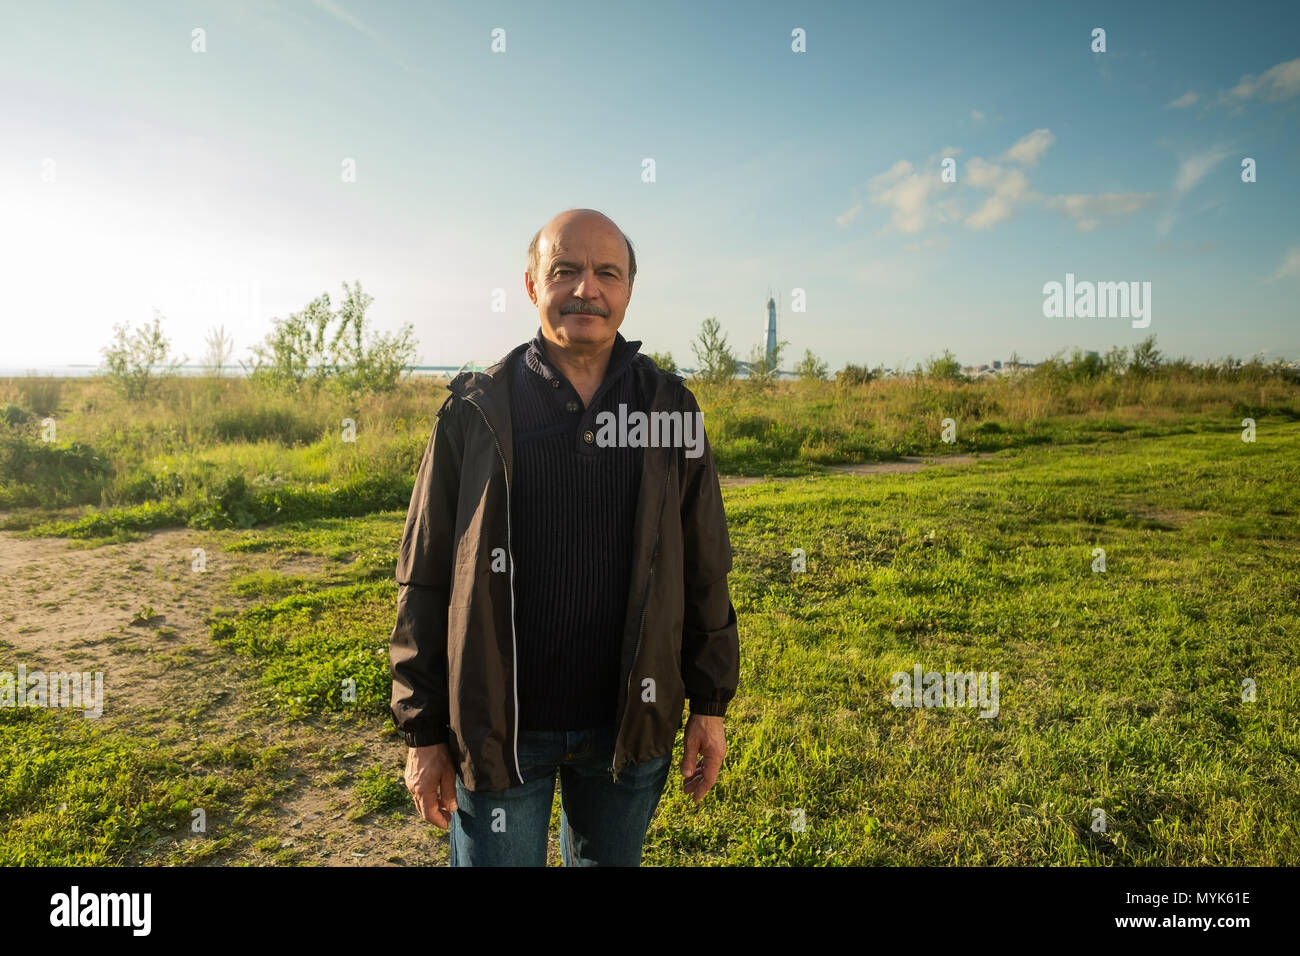 Portrait of a senior man outdoors Photo Stock